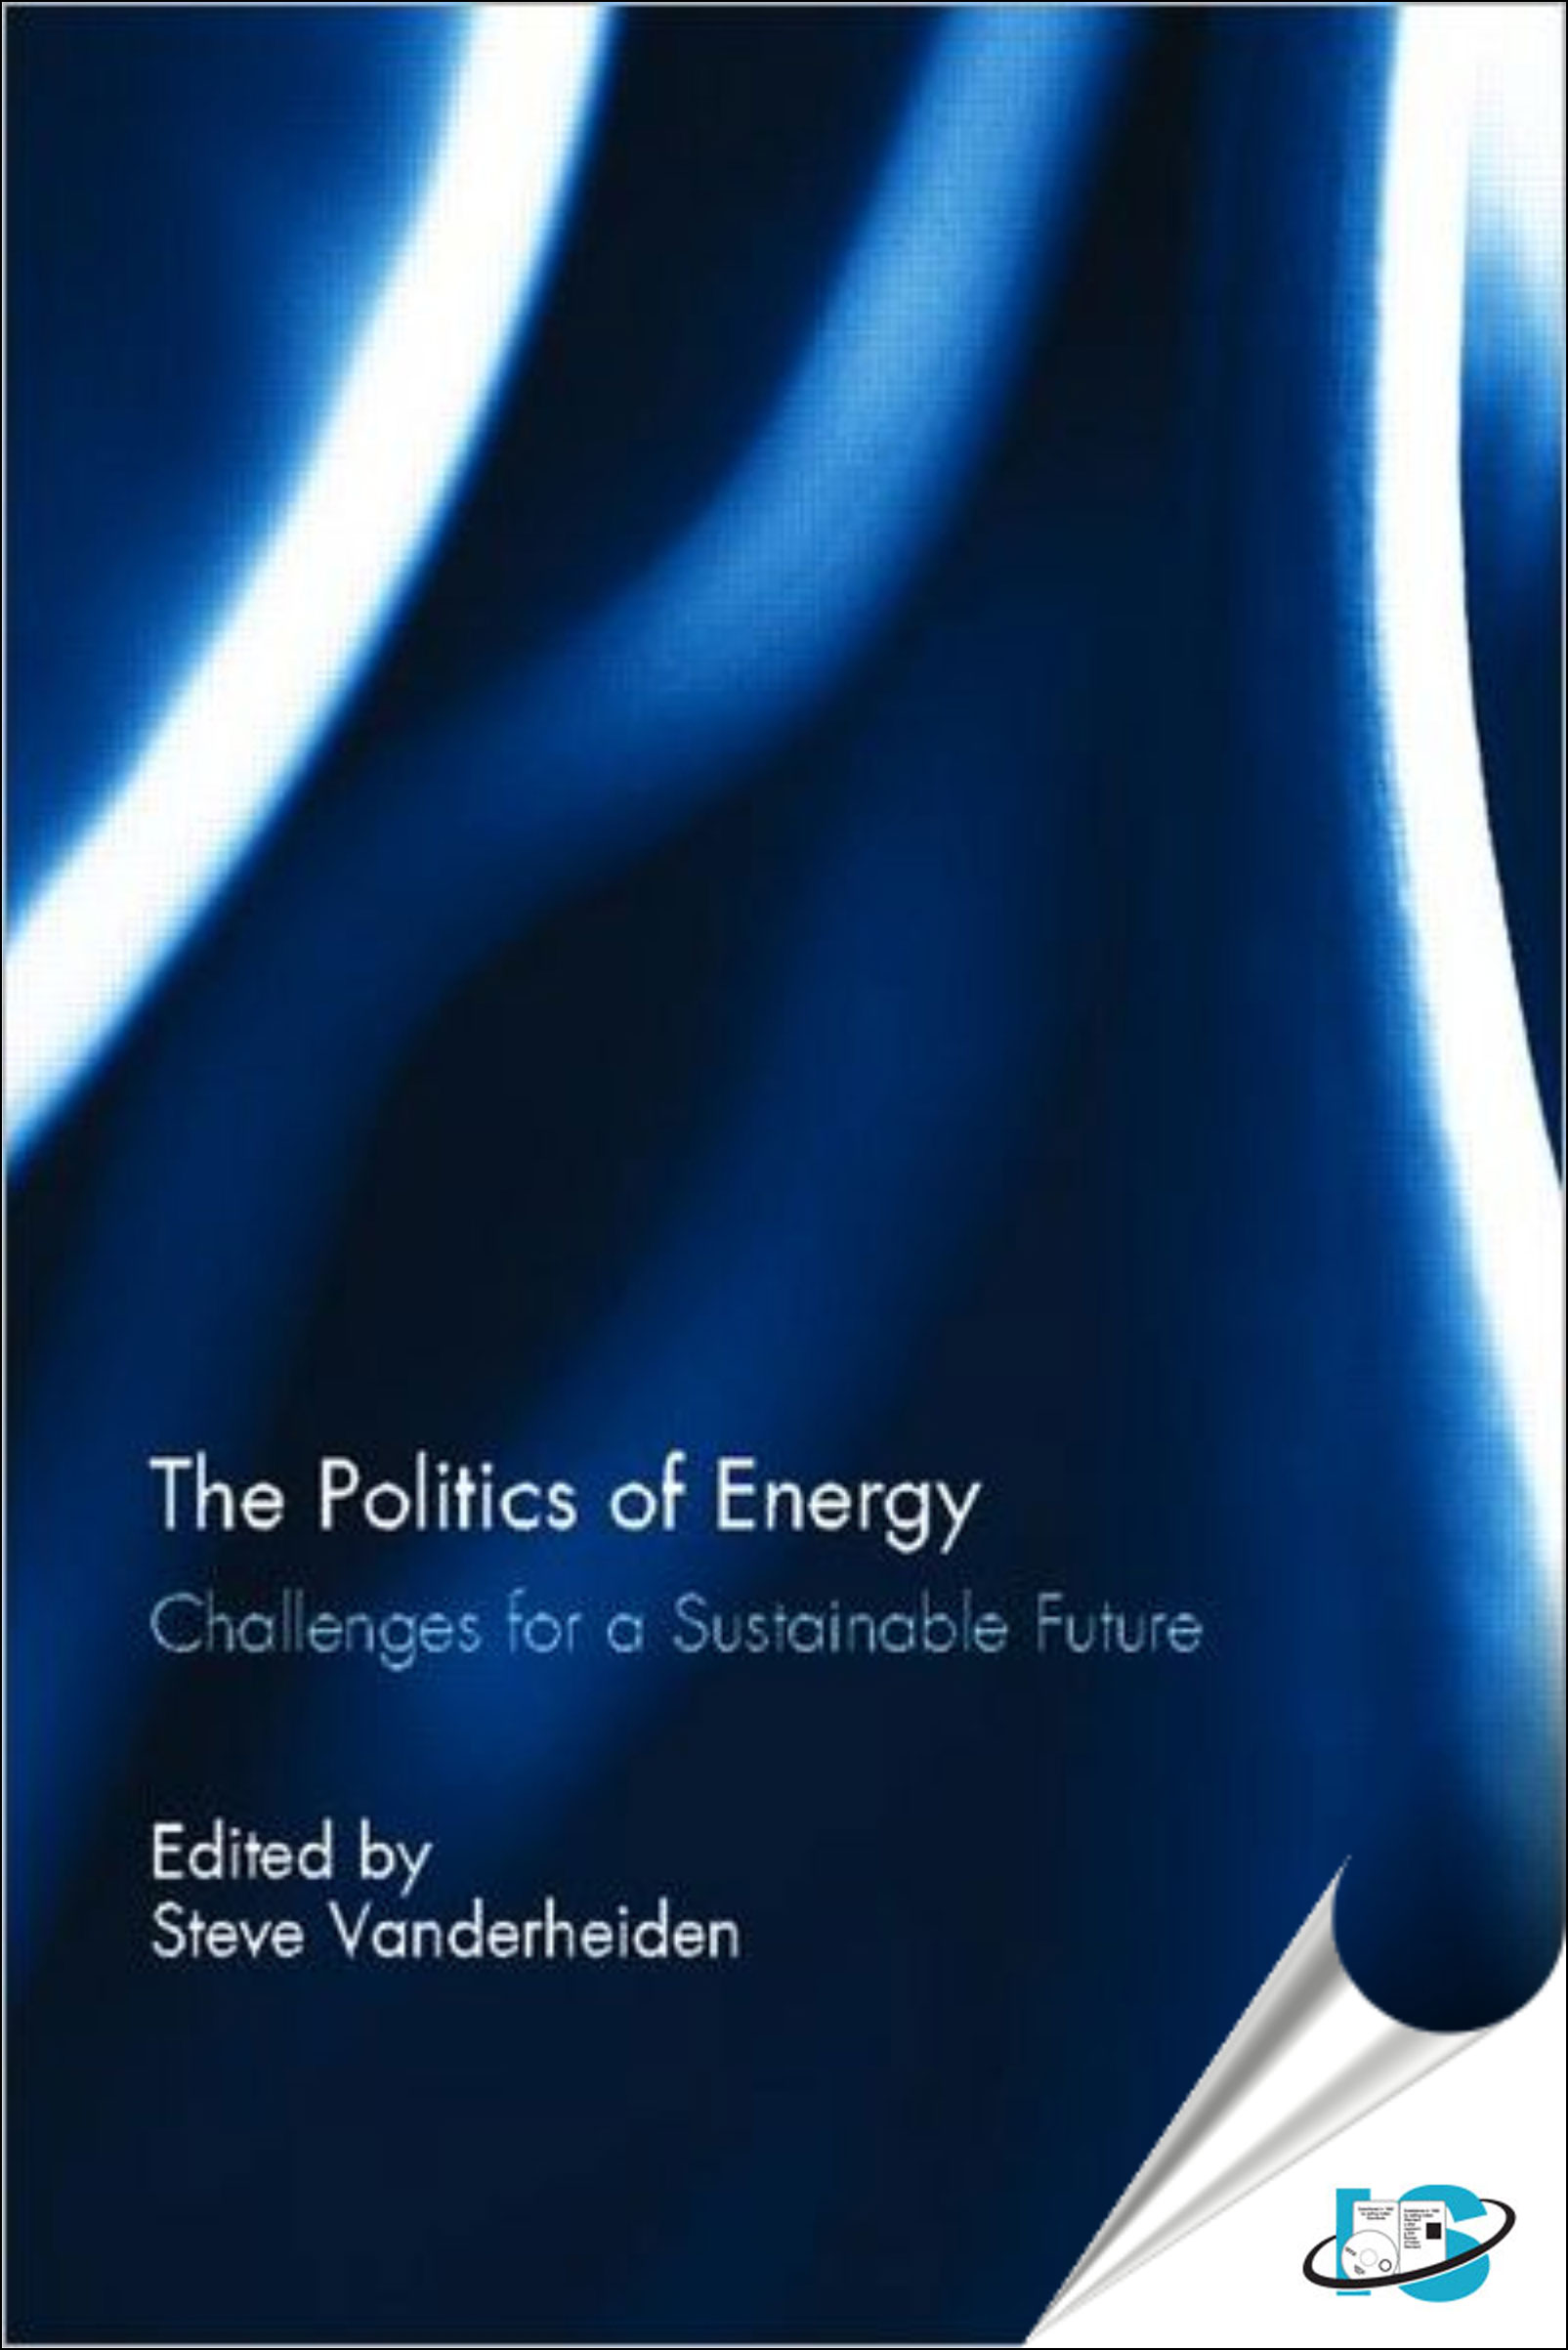 energy politics Energy issues have always been important in international relations, but in recent years may have become even more important than in the past due to the widespread awareness of existing limits to energy sources and negative climate impacts.